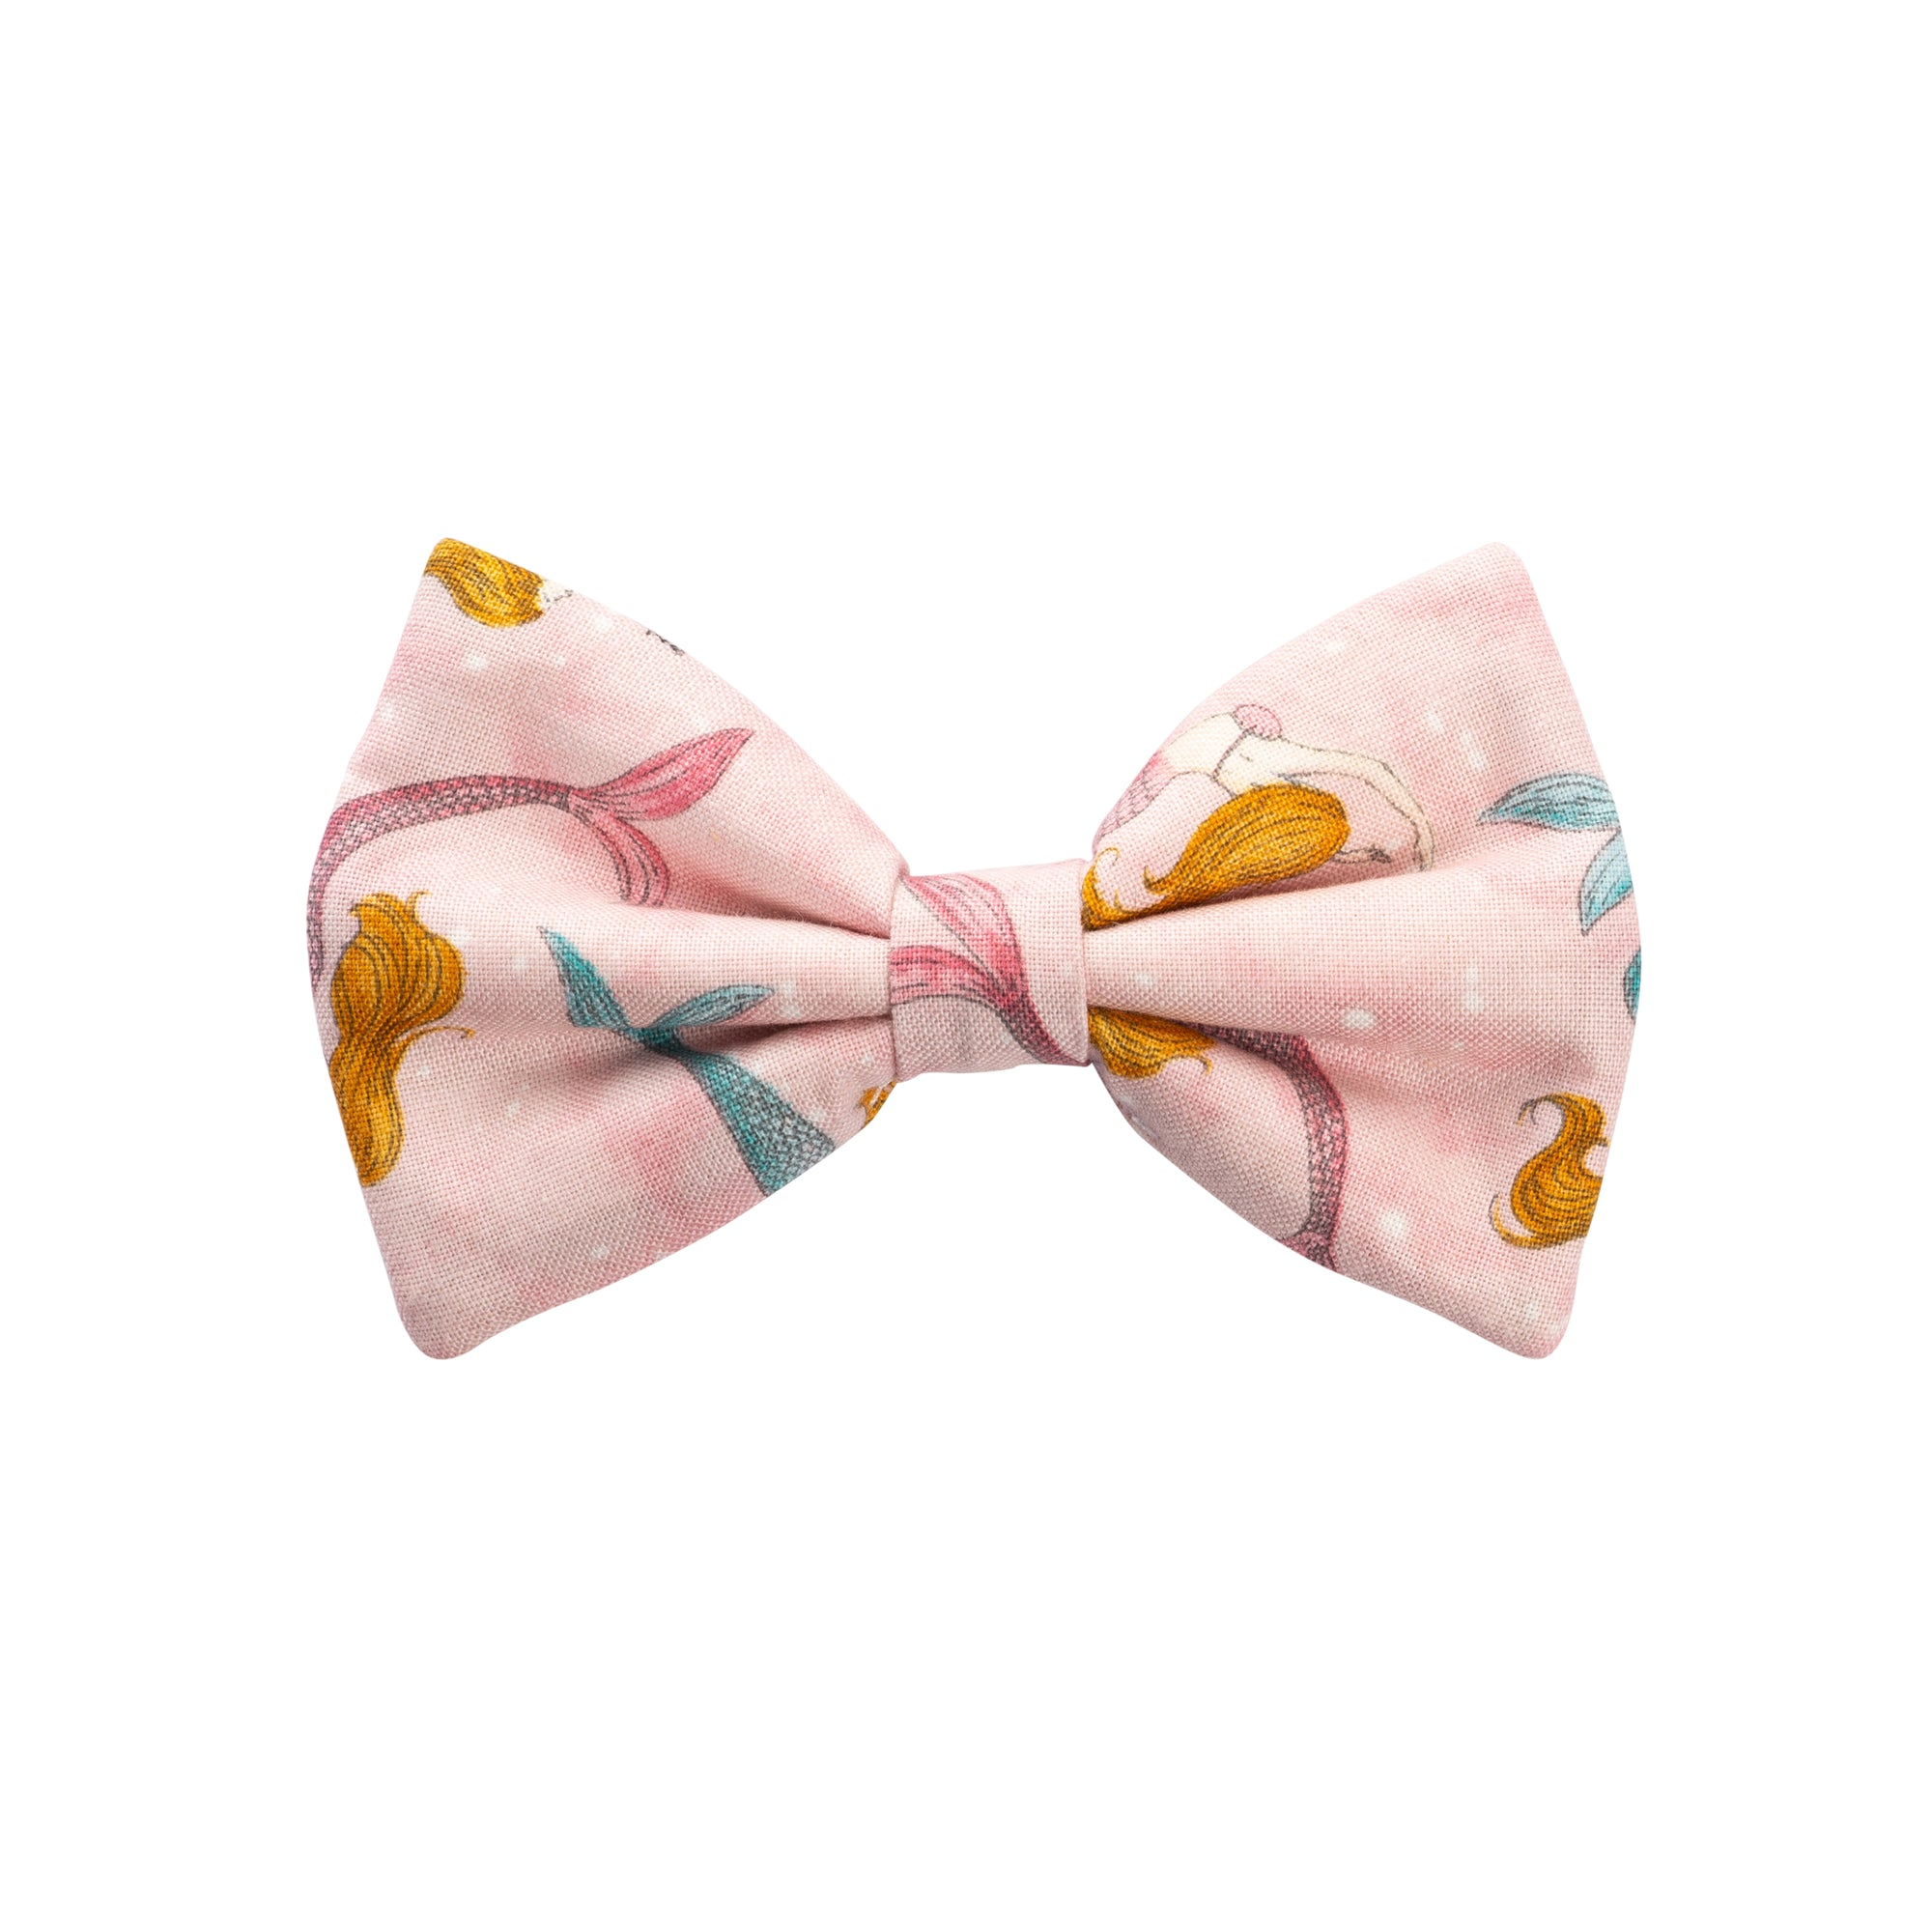 Mermaids Bows